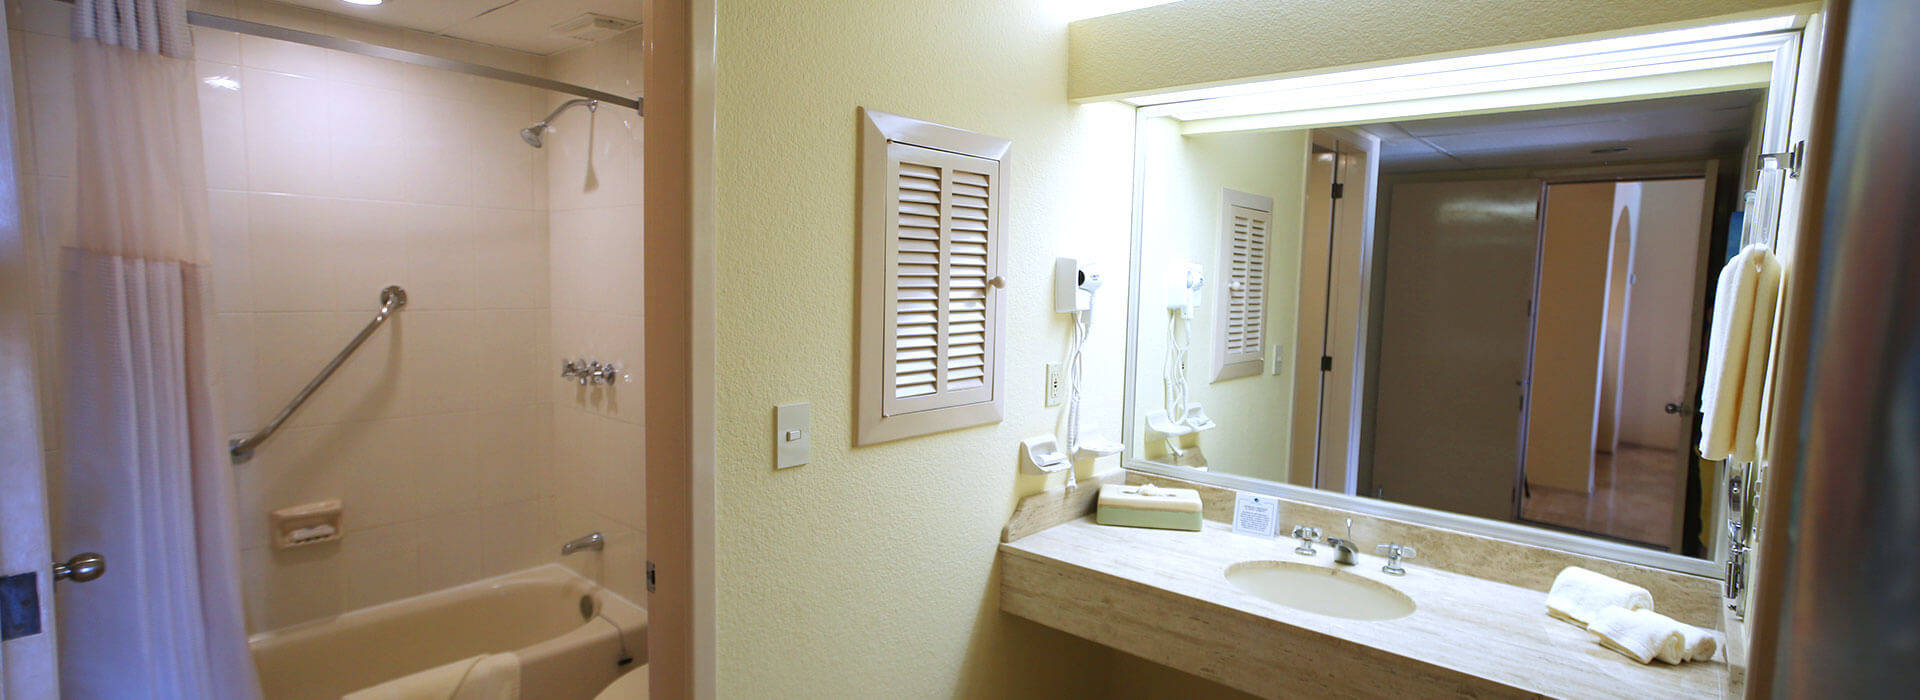 private bathroom in cancun suite